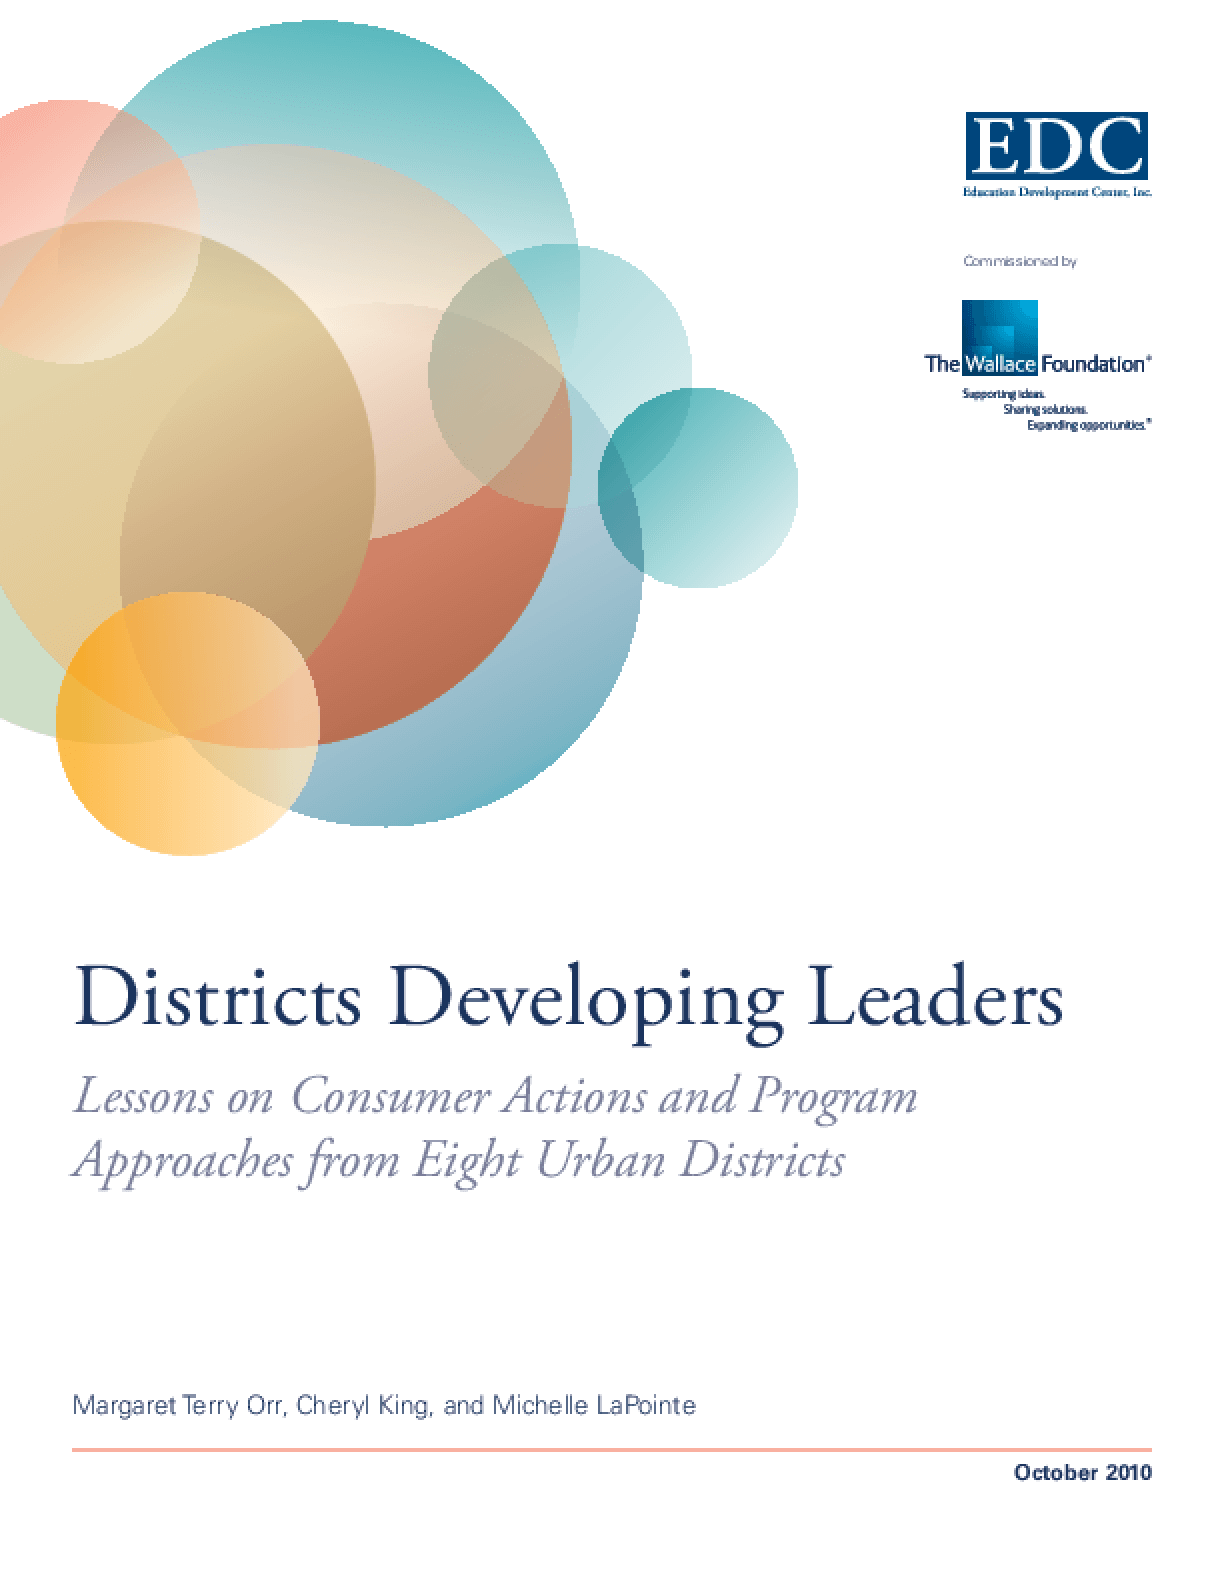 Districts Developing Leaders: Lessons on Consumer Actions and Program Approaches From Eight Urban Districts